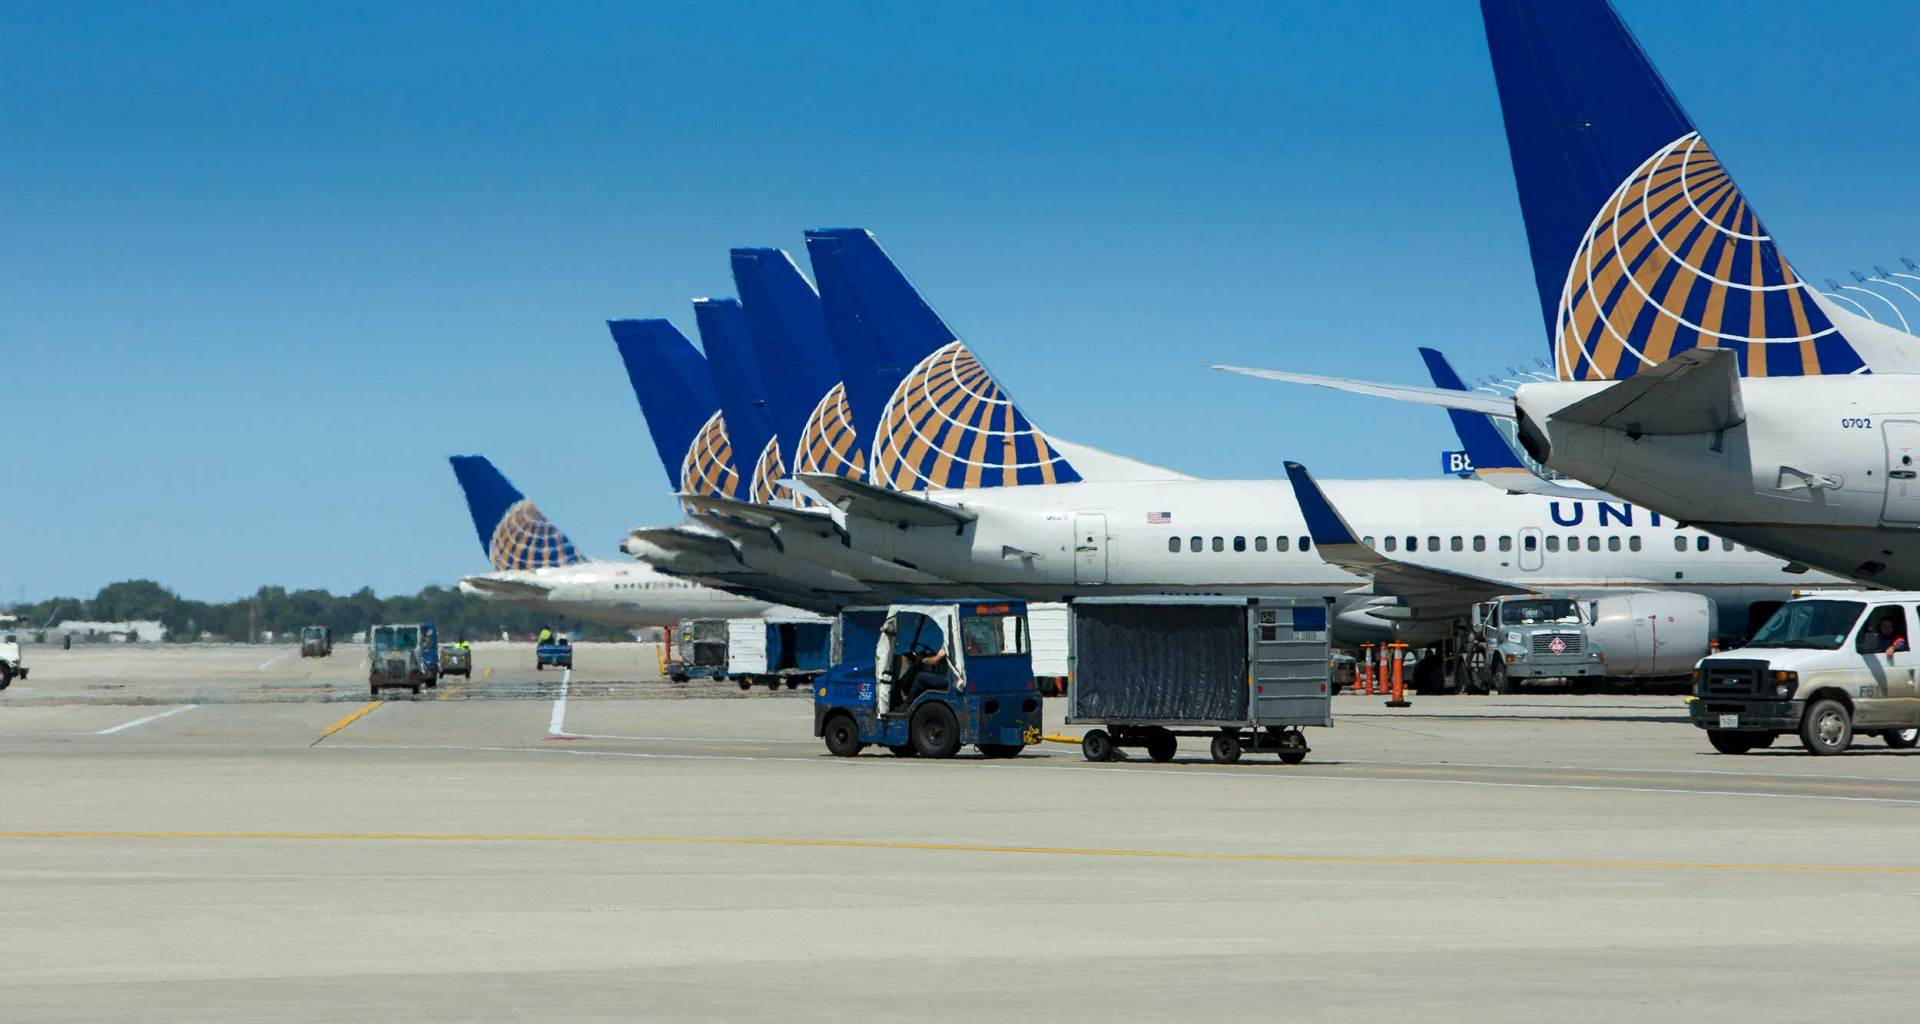 Multiple United Airlines jets parked at airport gates.